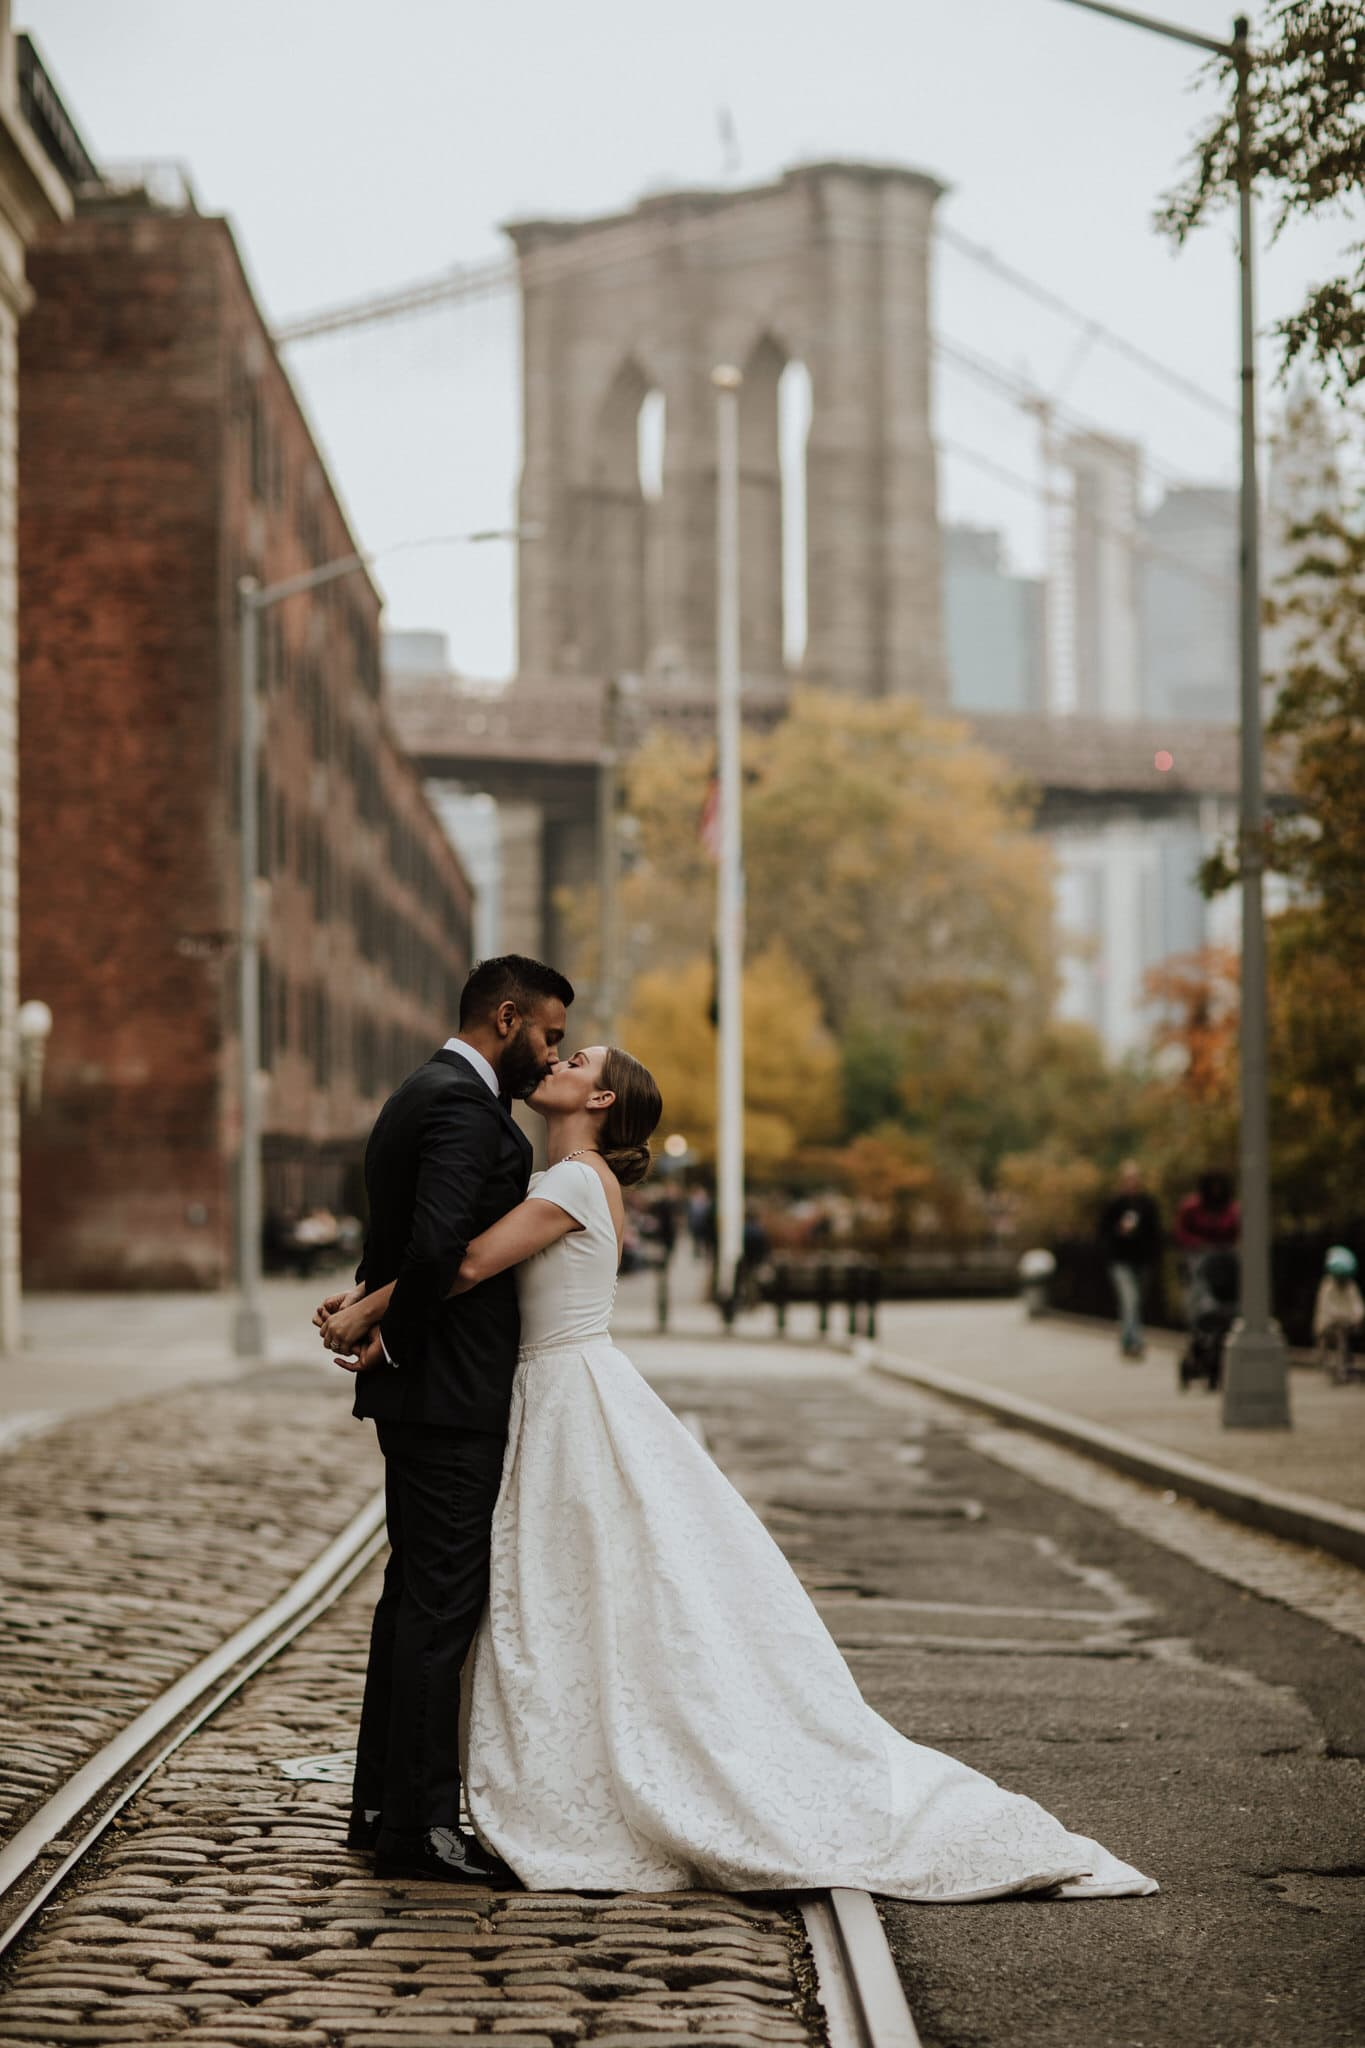 The bride and groom kiss on the cobble stones streets of Brooklyn, New York. Wedding Photographer Brent Calis.